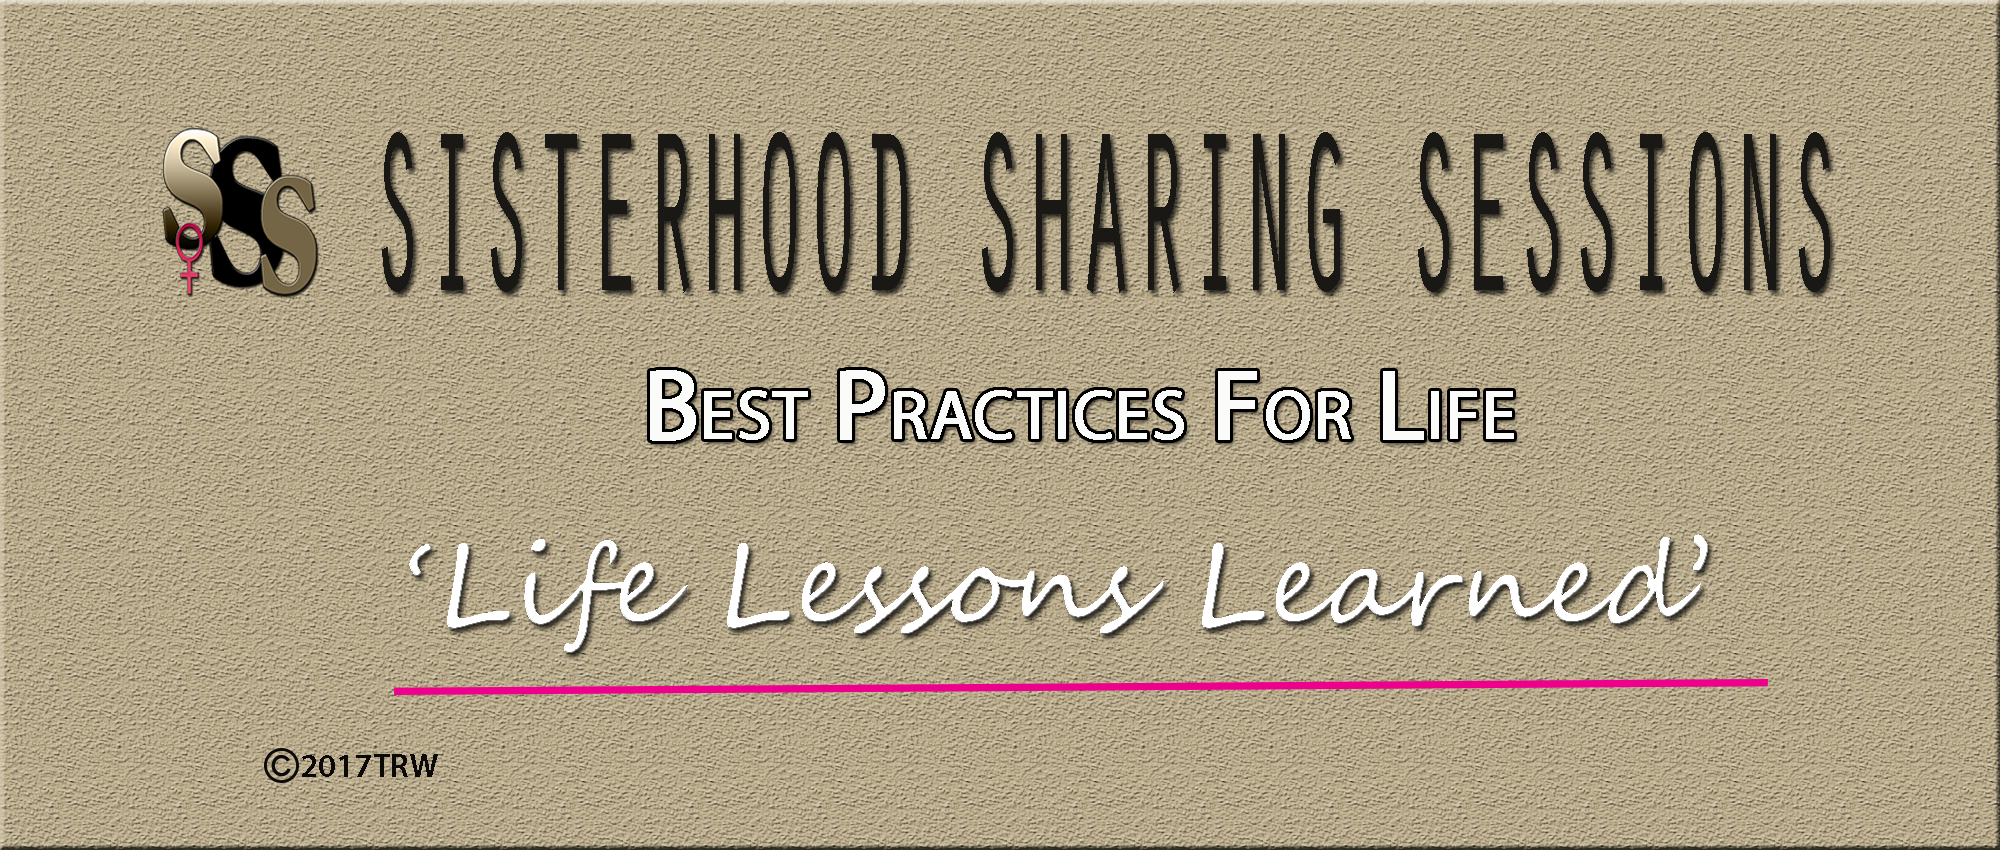 Power Of Women | Sisterhood Sessions | Best Practices for Life